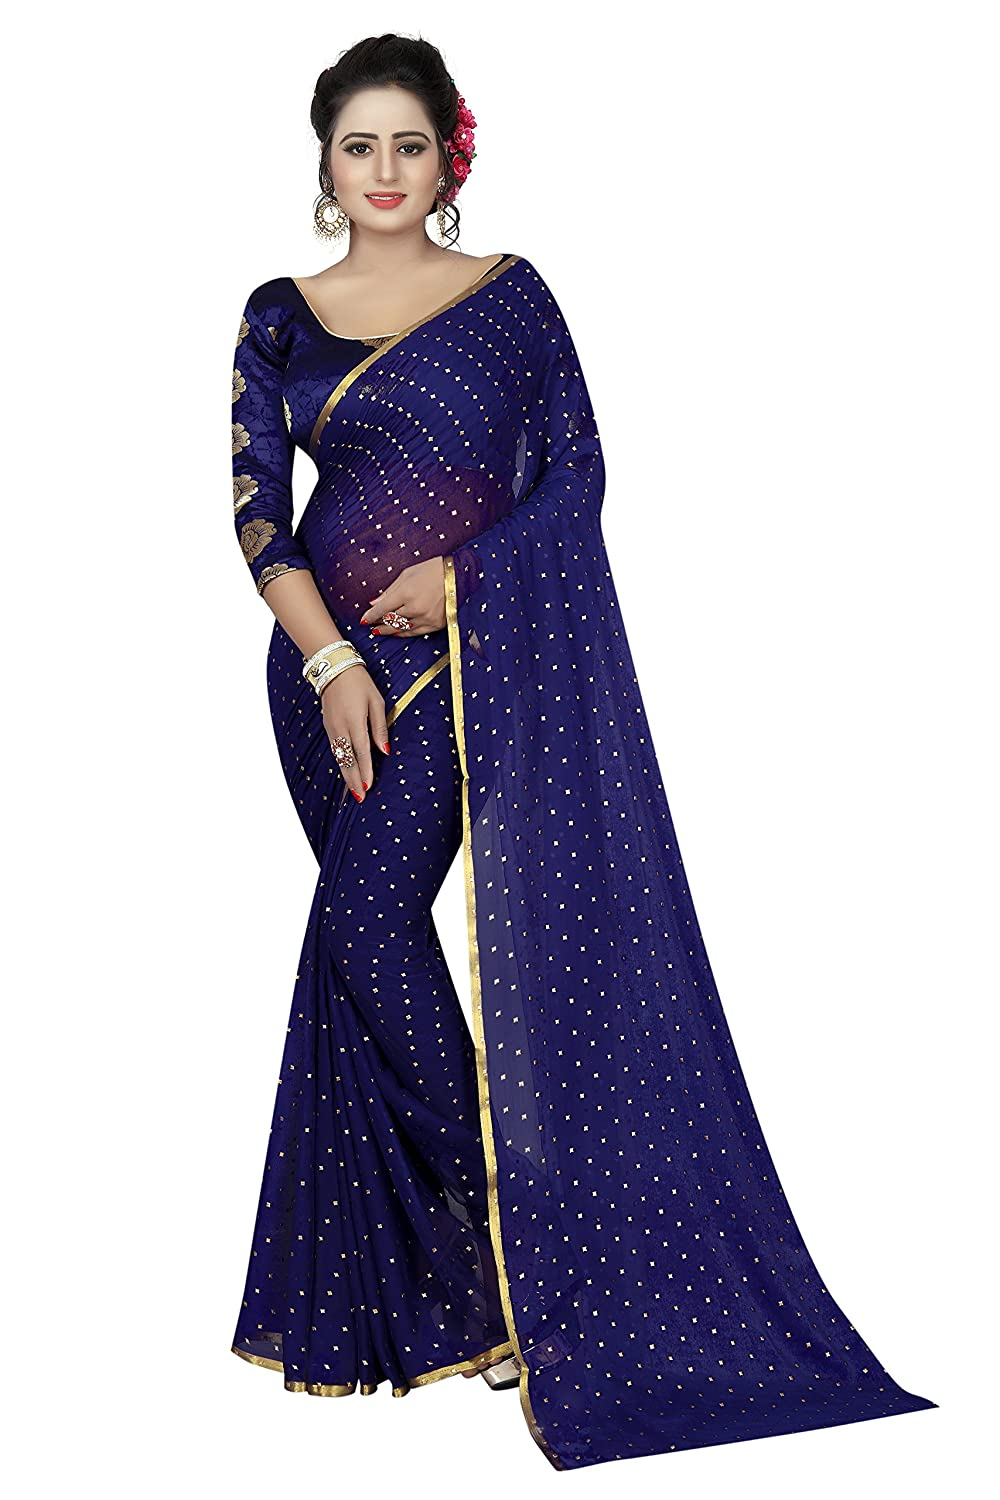 PerfectBlue Chiffon Saree with Blouse Piece